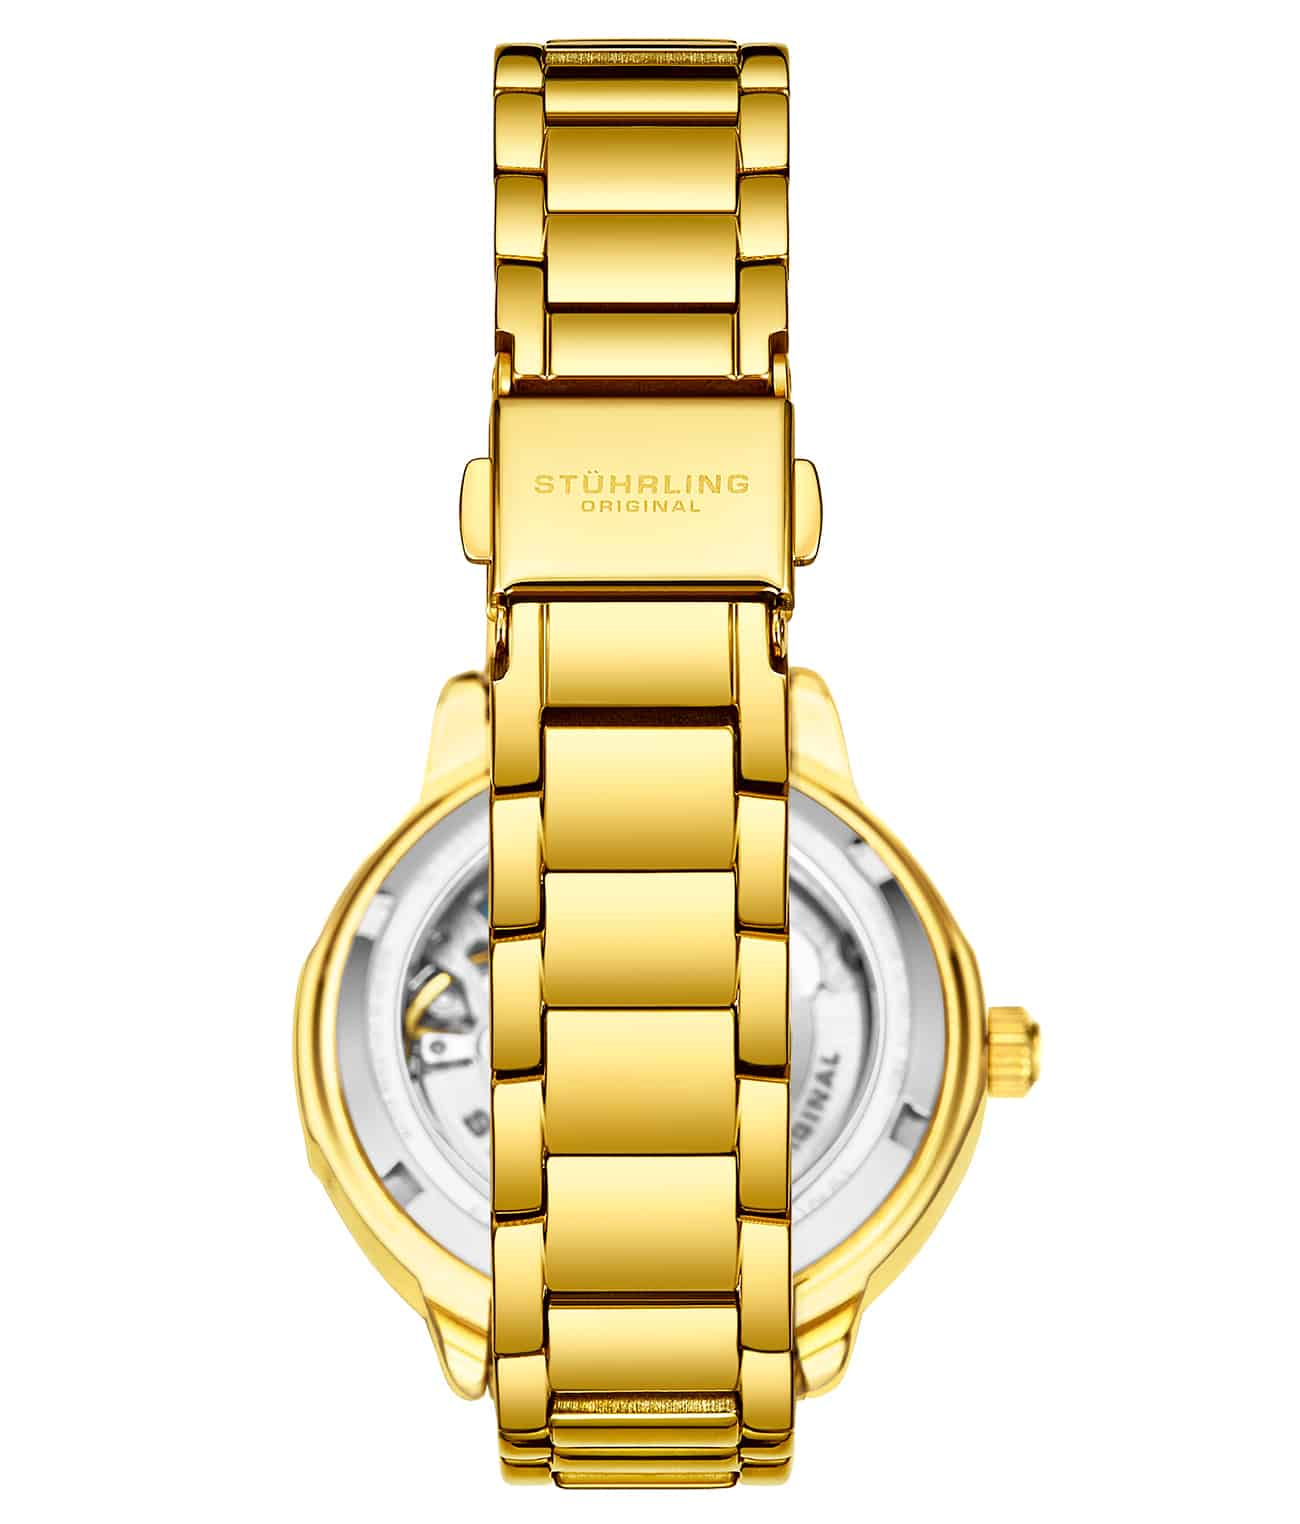 Silver Dial / Gold Case / Gold Band